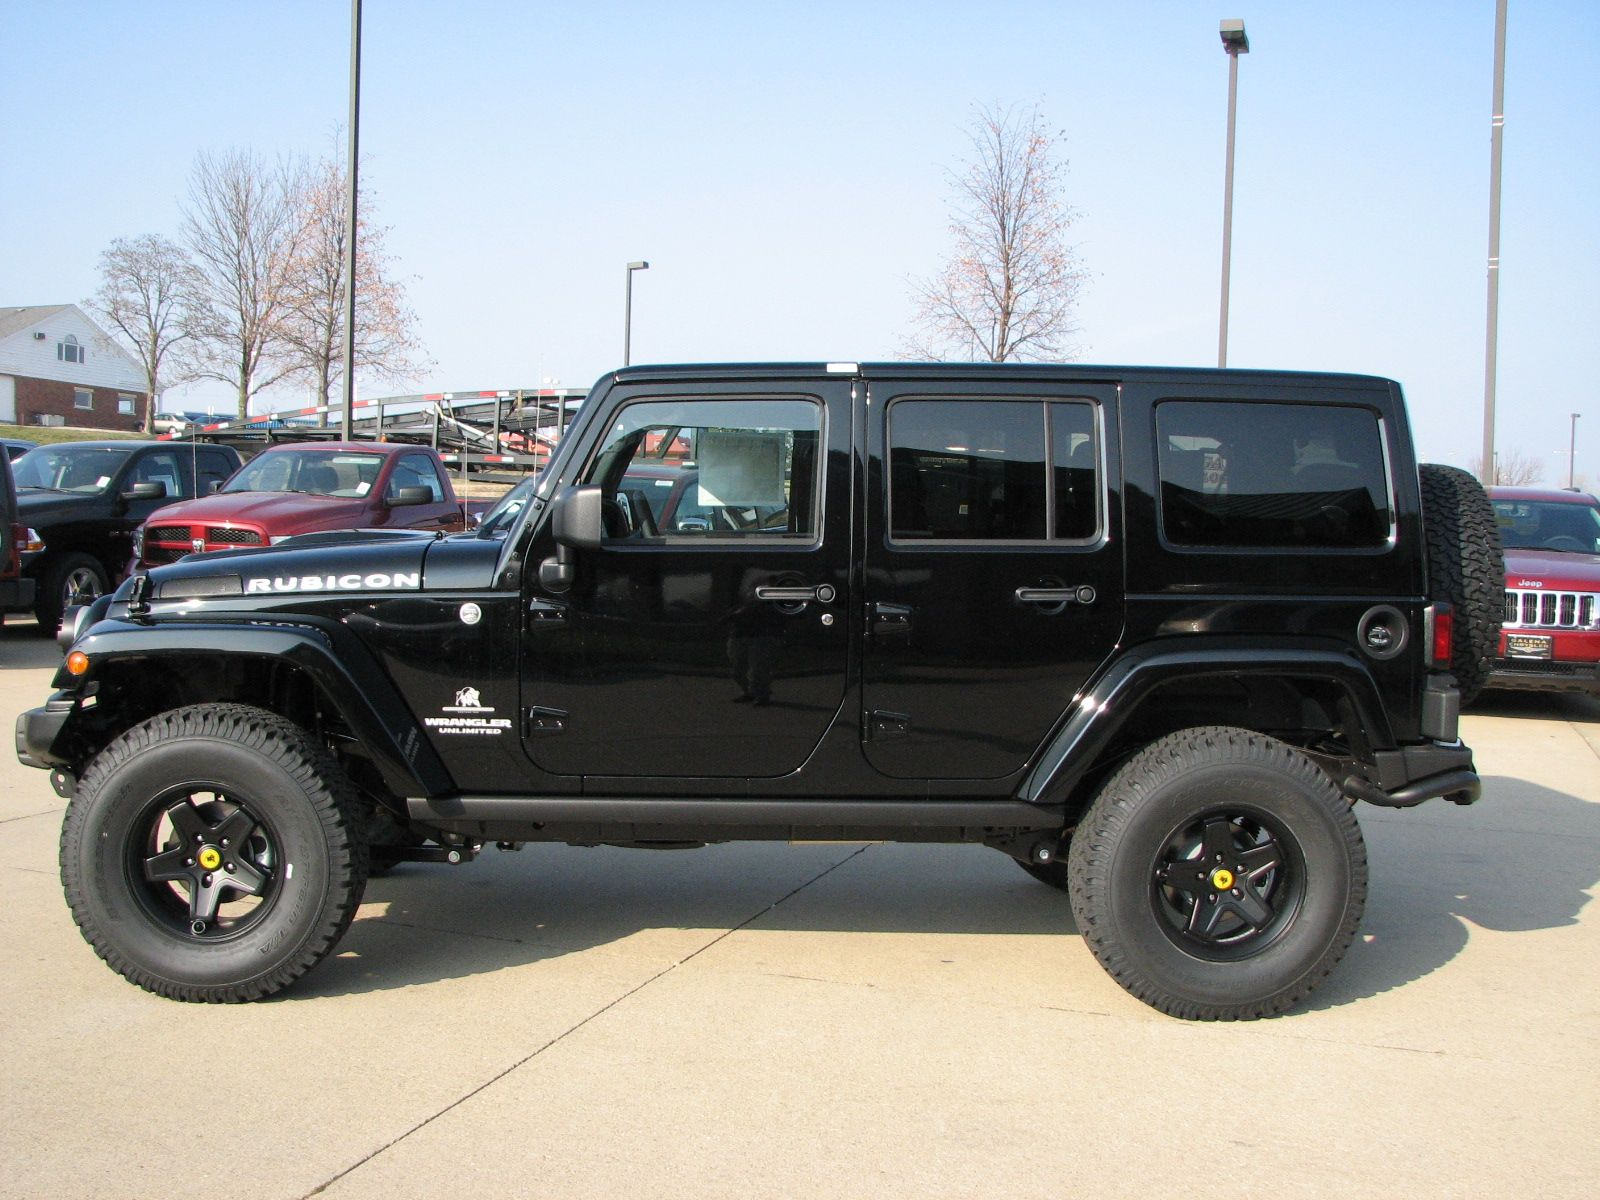 2013 jeep wrangler unlimited rubicon black aev jk250 black pintler wheels american expedition vehicles